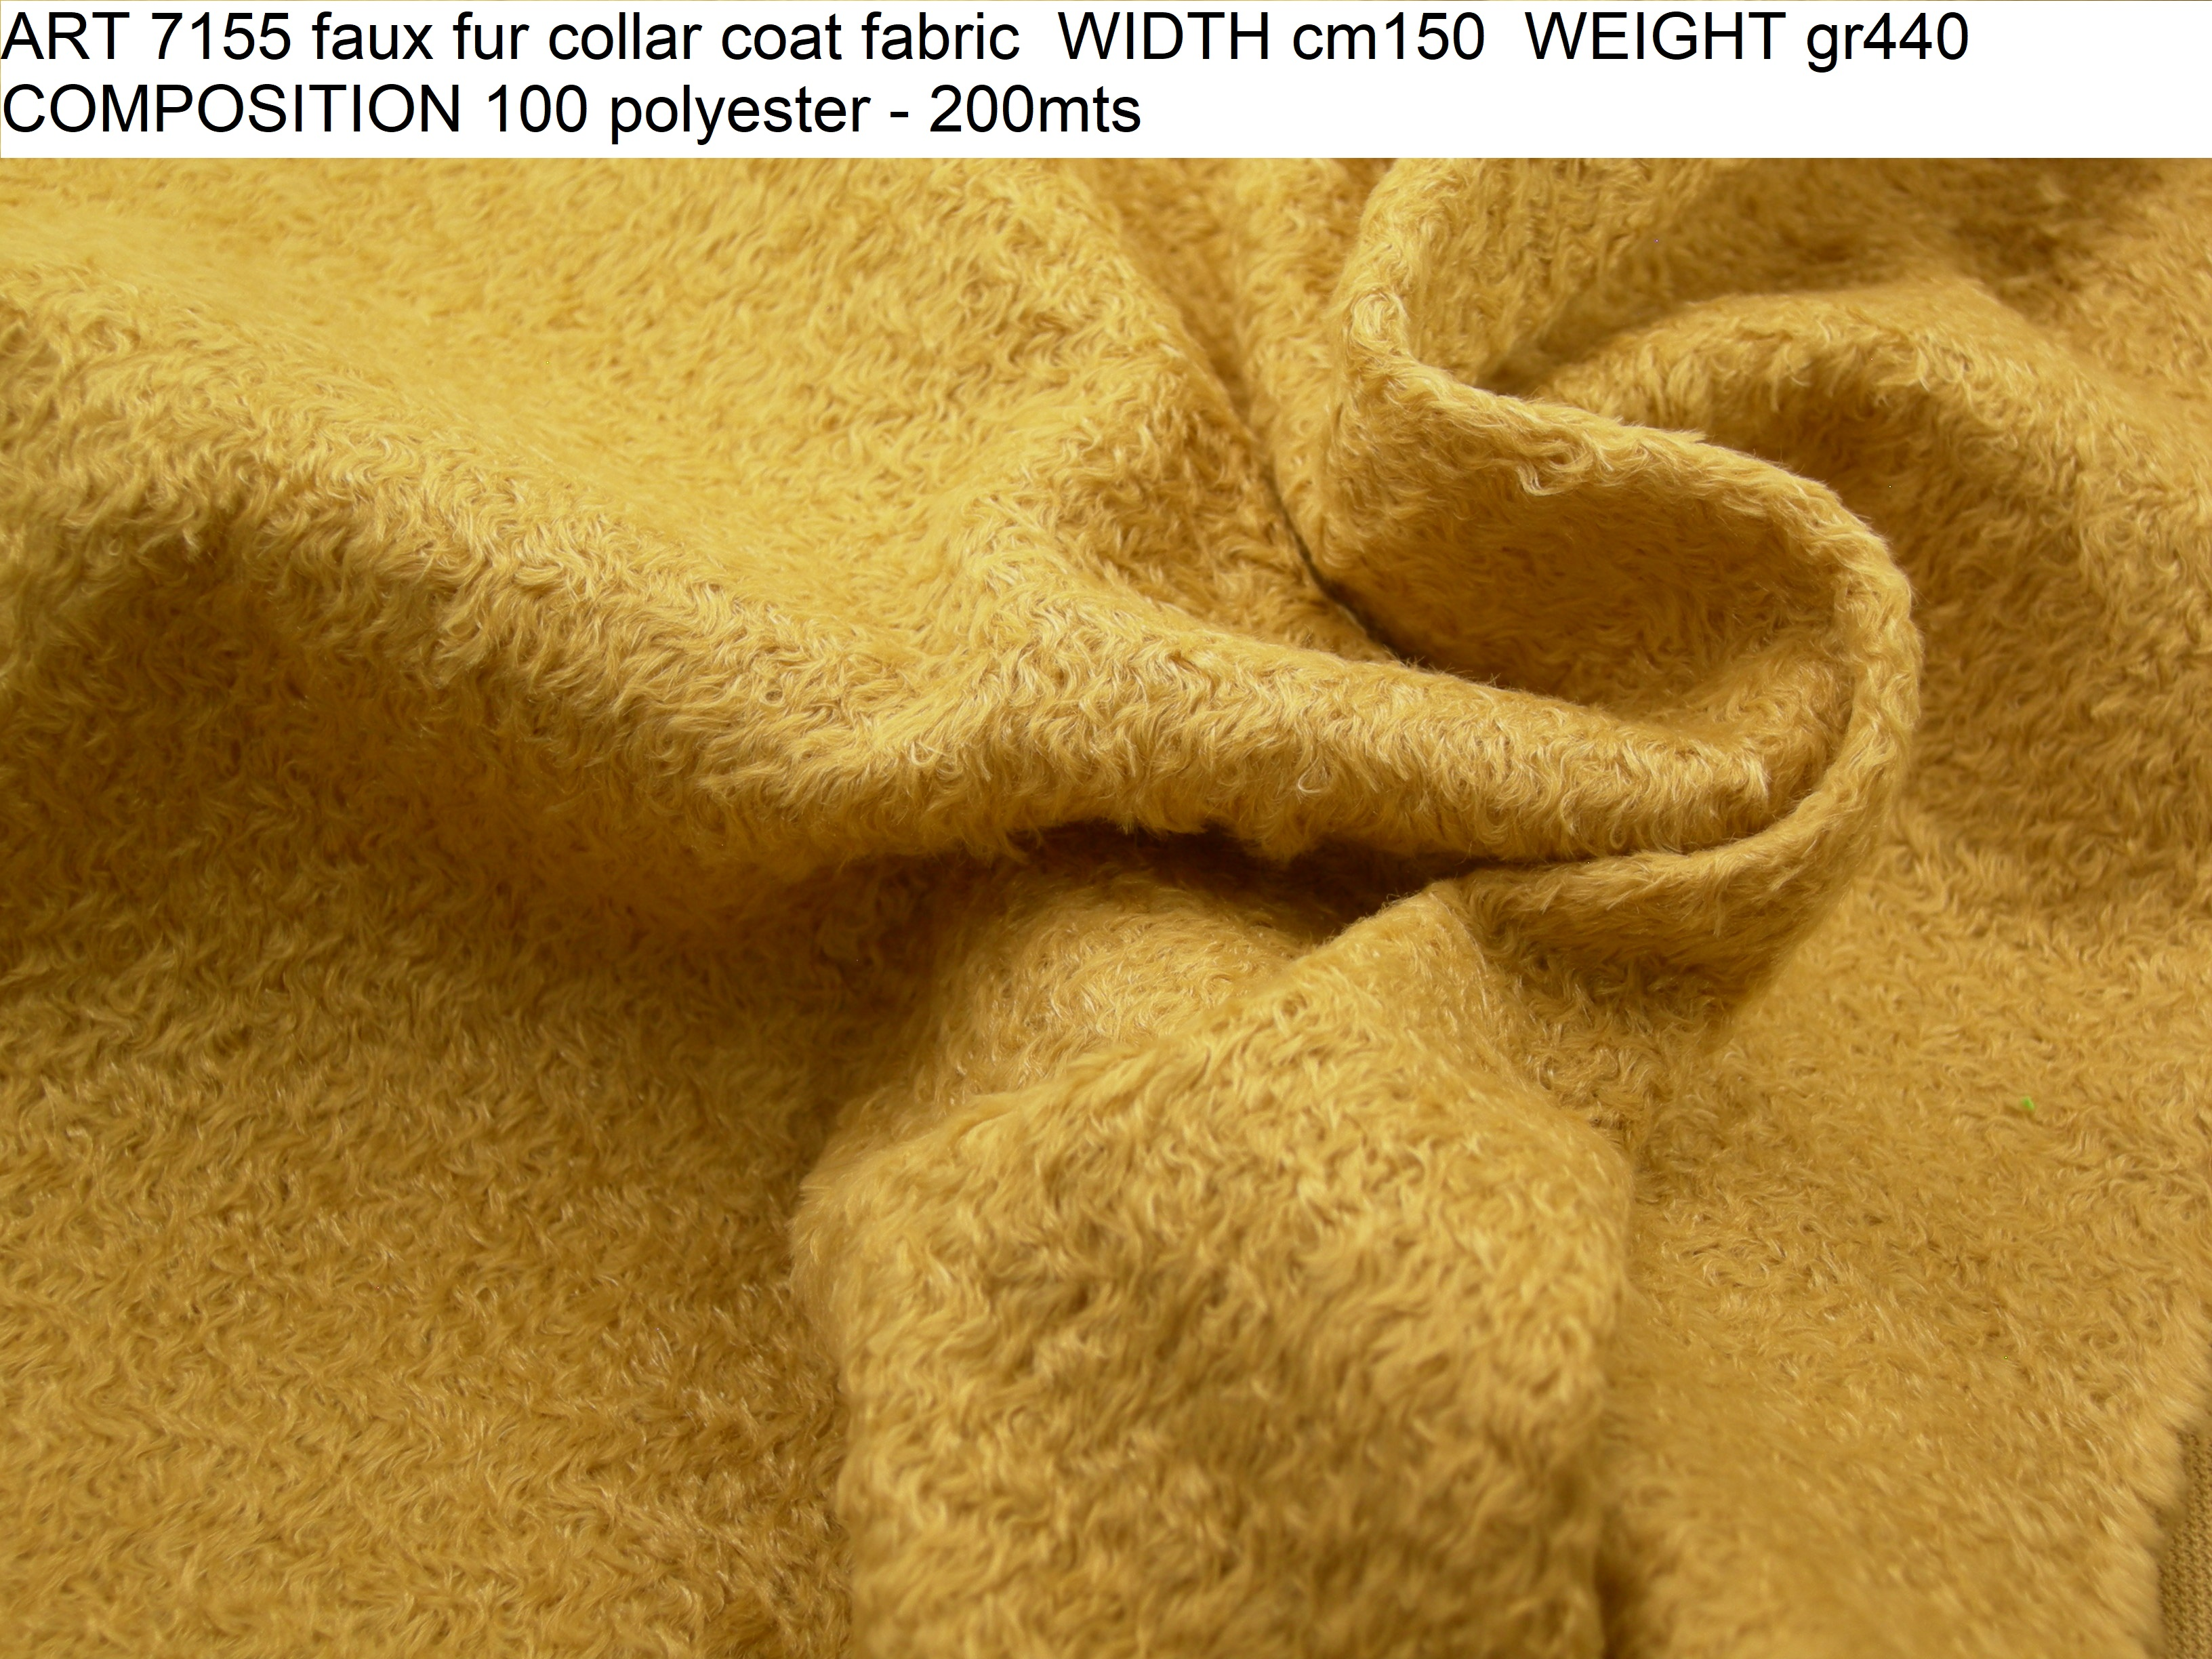 ART 7155 faux fur collar coat fabric WIDTH cm150 WEIGHT gr440 COMPOSITION 100 polyester - 200mts